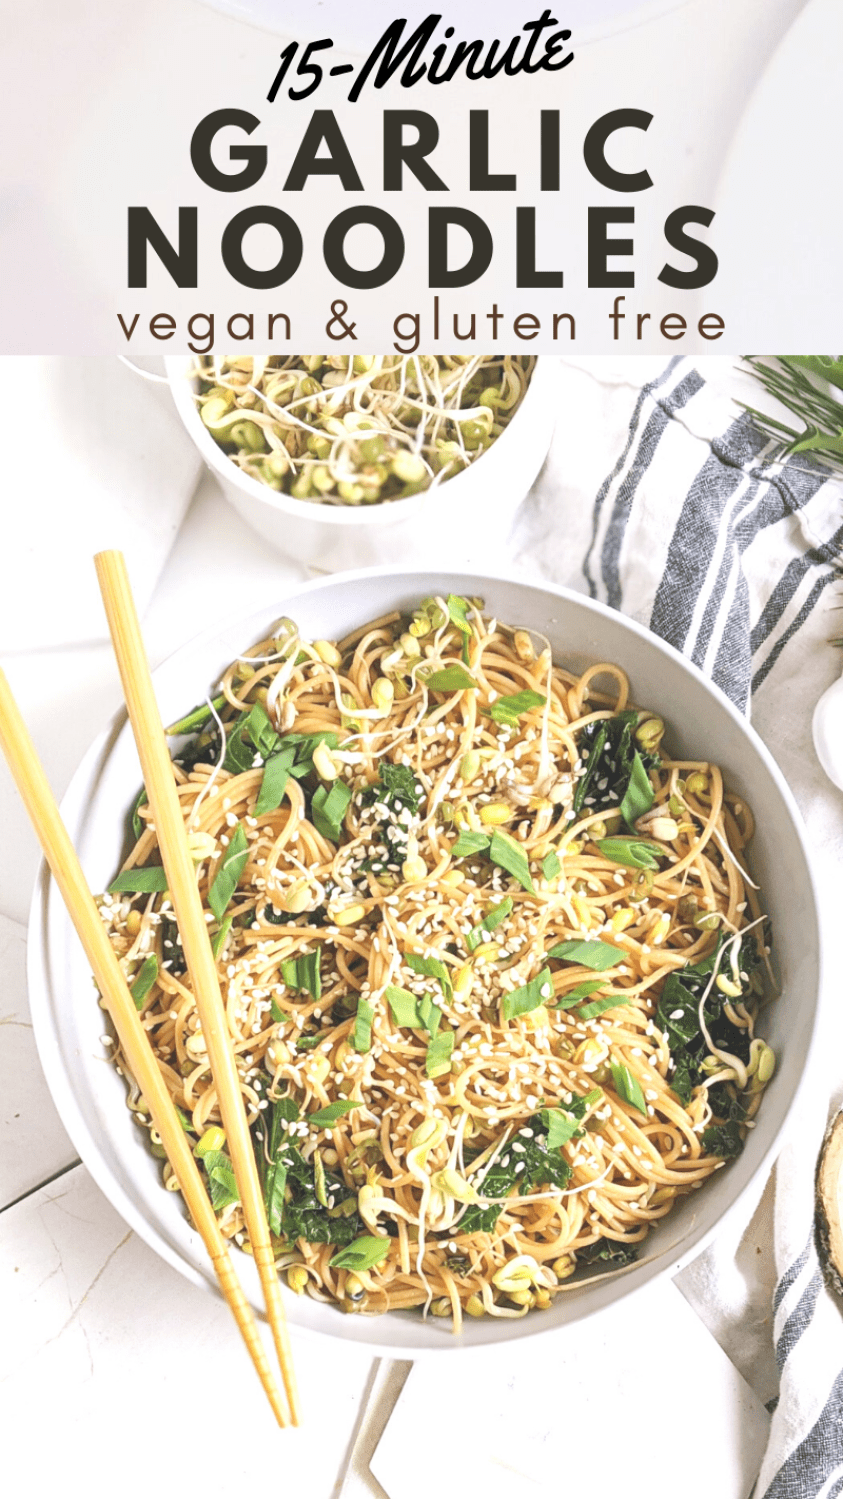 pantry staple noodle recipe made with pantry ingredients pantry garlic noodles easy recipe 15 minute garlic noodles at home vegan and gluten free pantry recipes